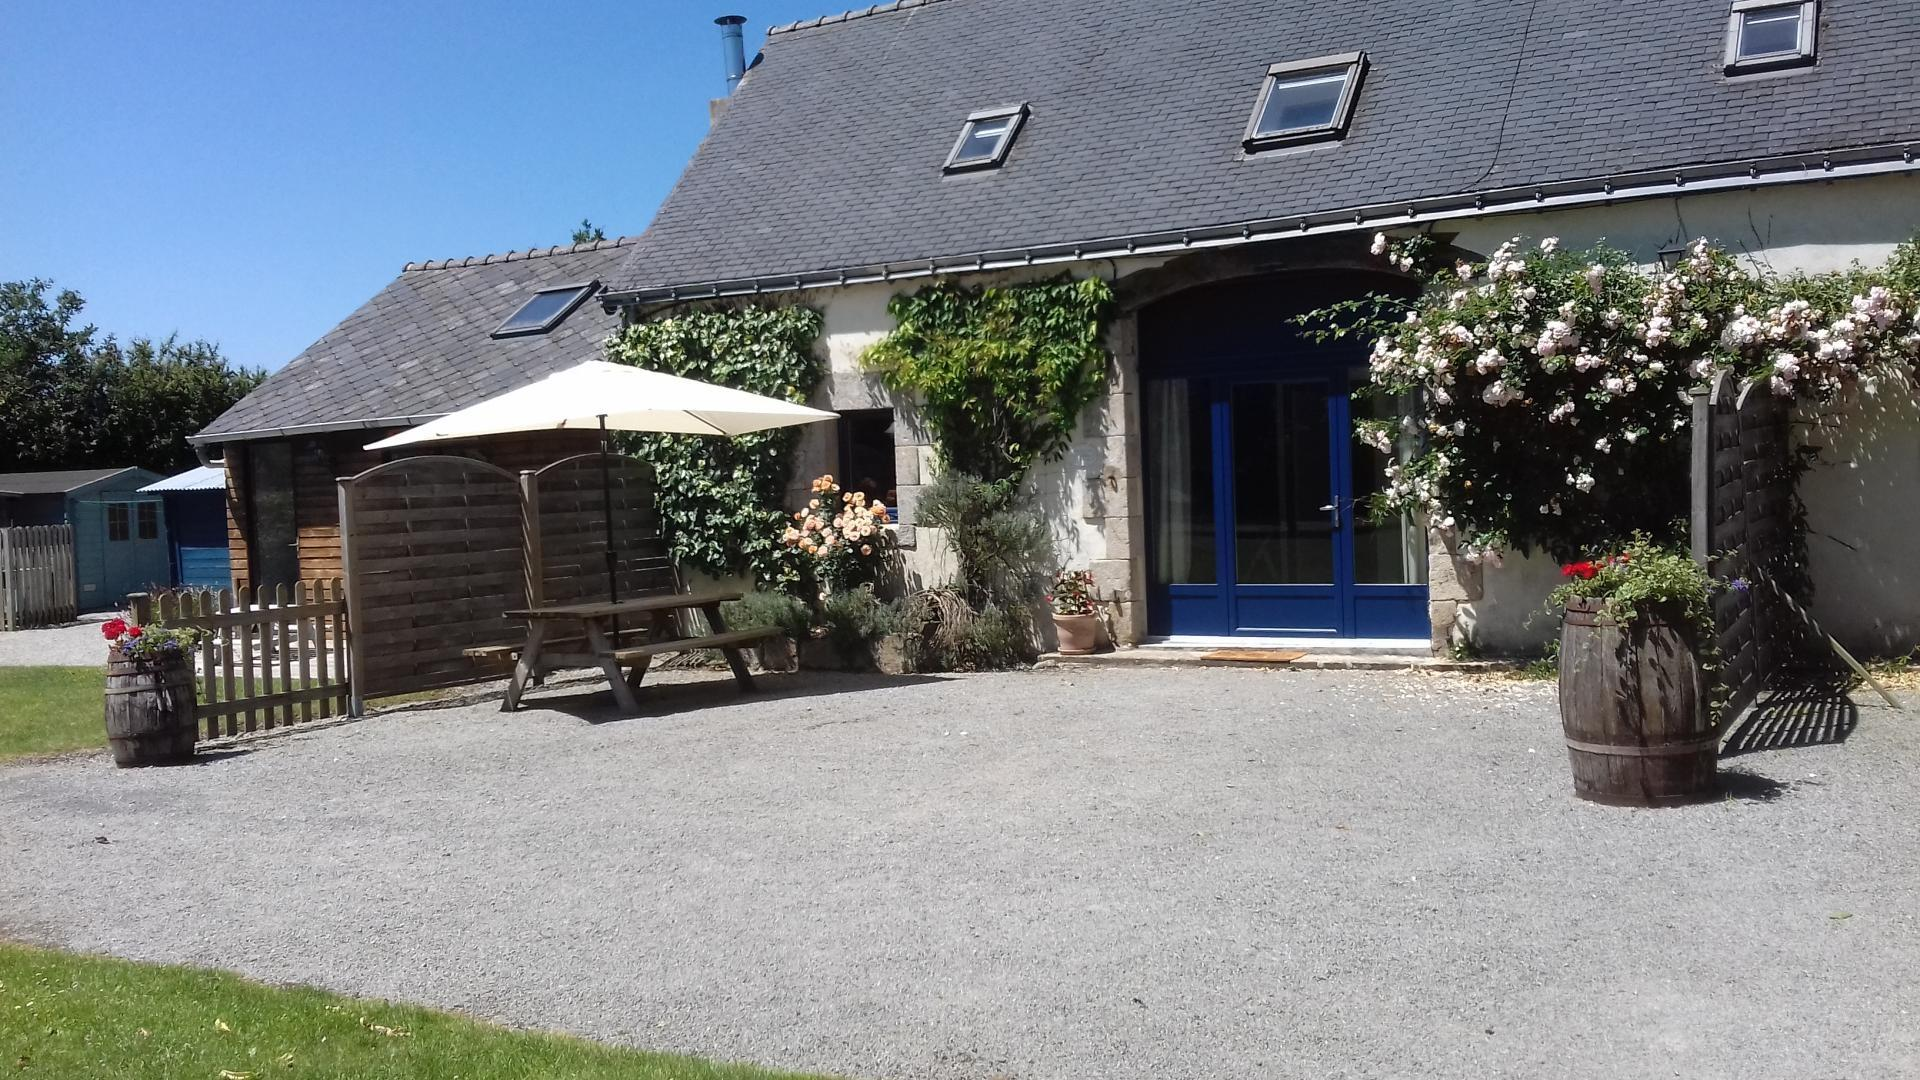 2 Bedroom Cottage/shared facilities in Brittany, France